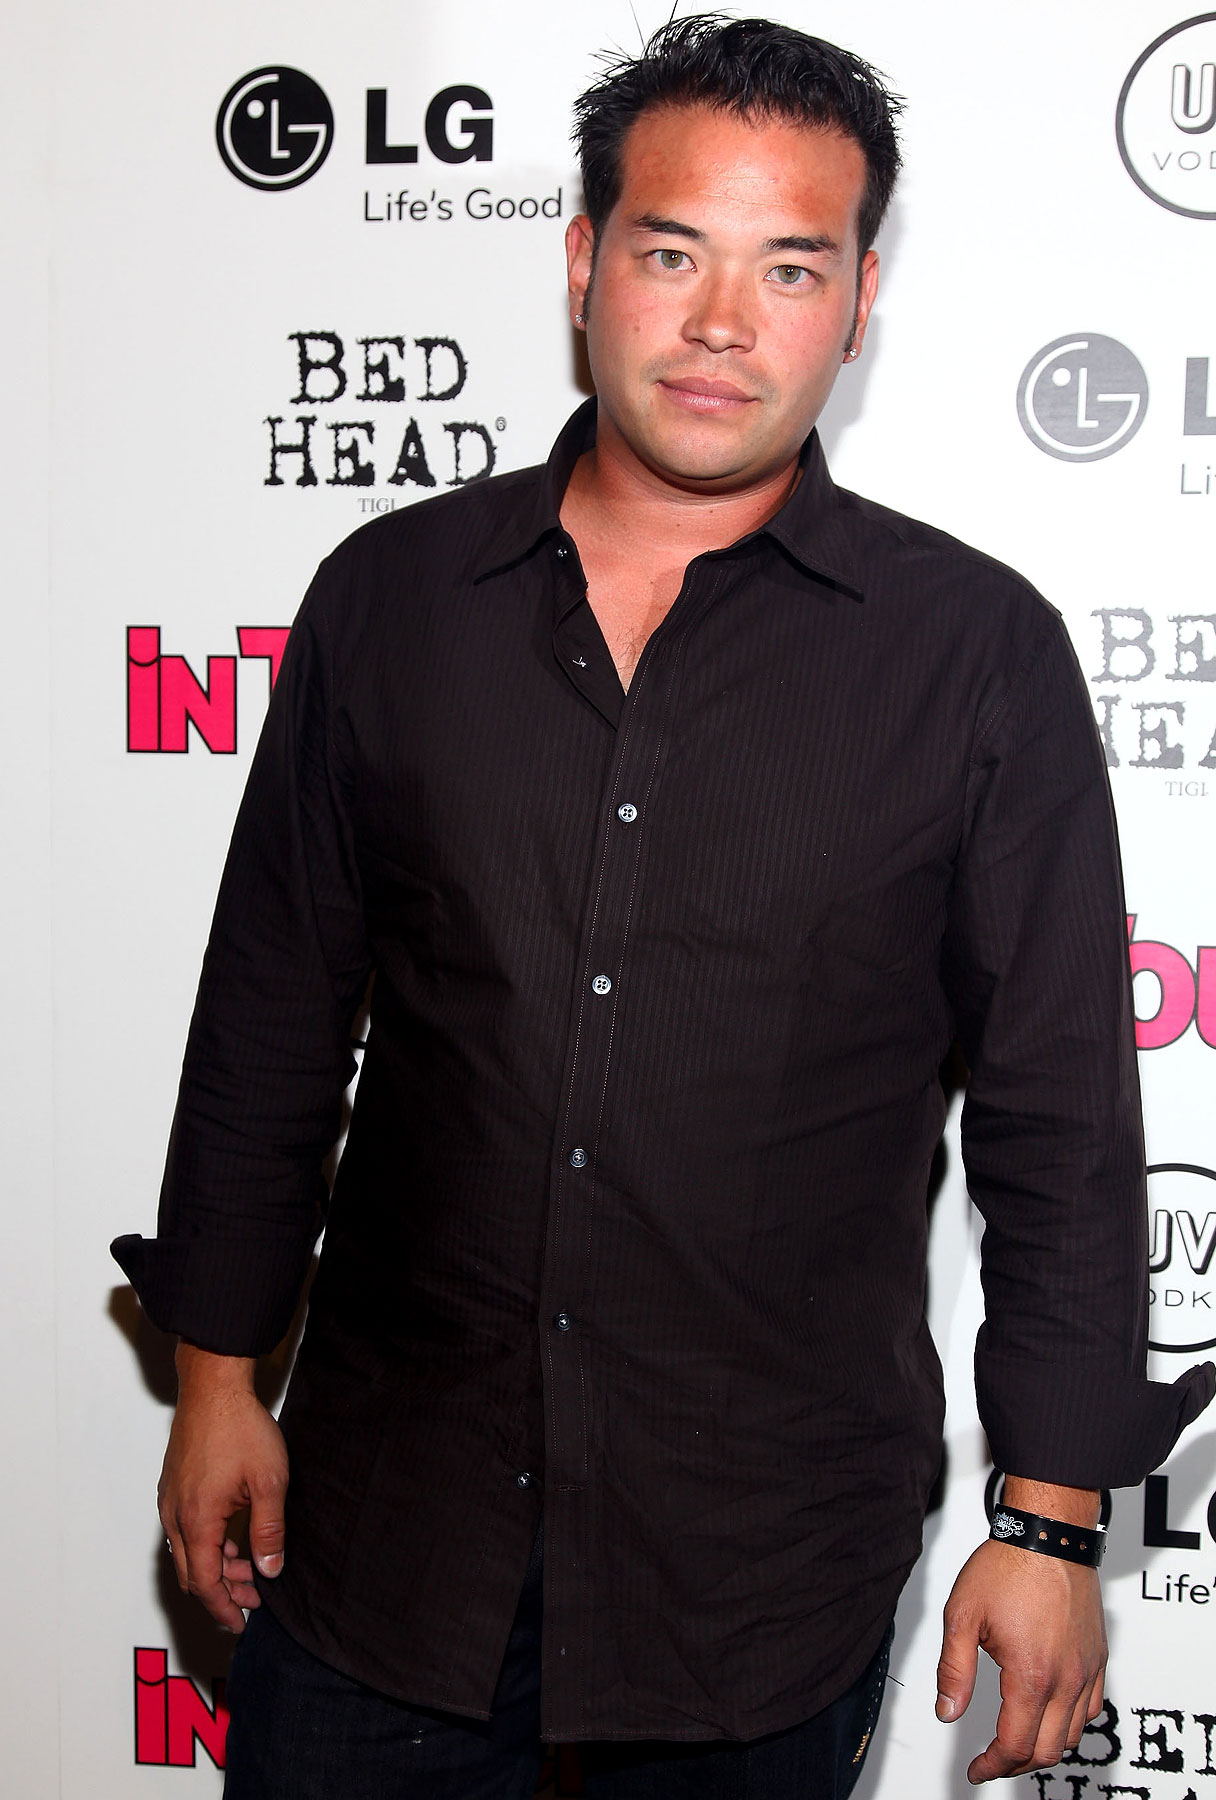 Jon Gosselin Says He's Sorry, Tries to Stop Divorce